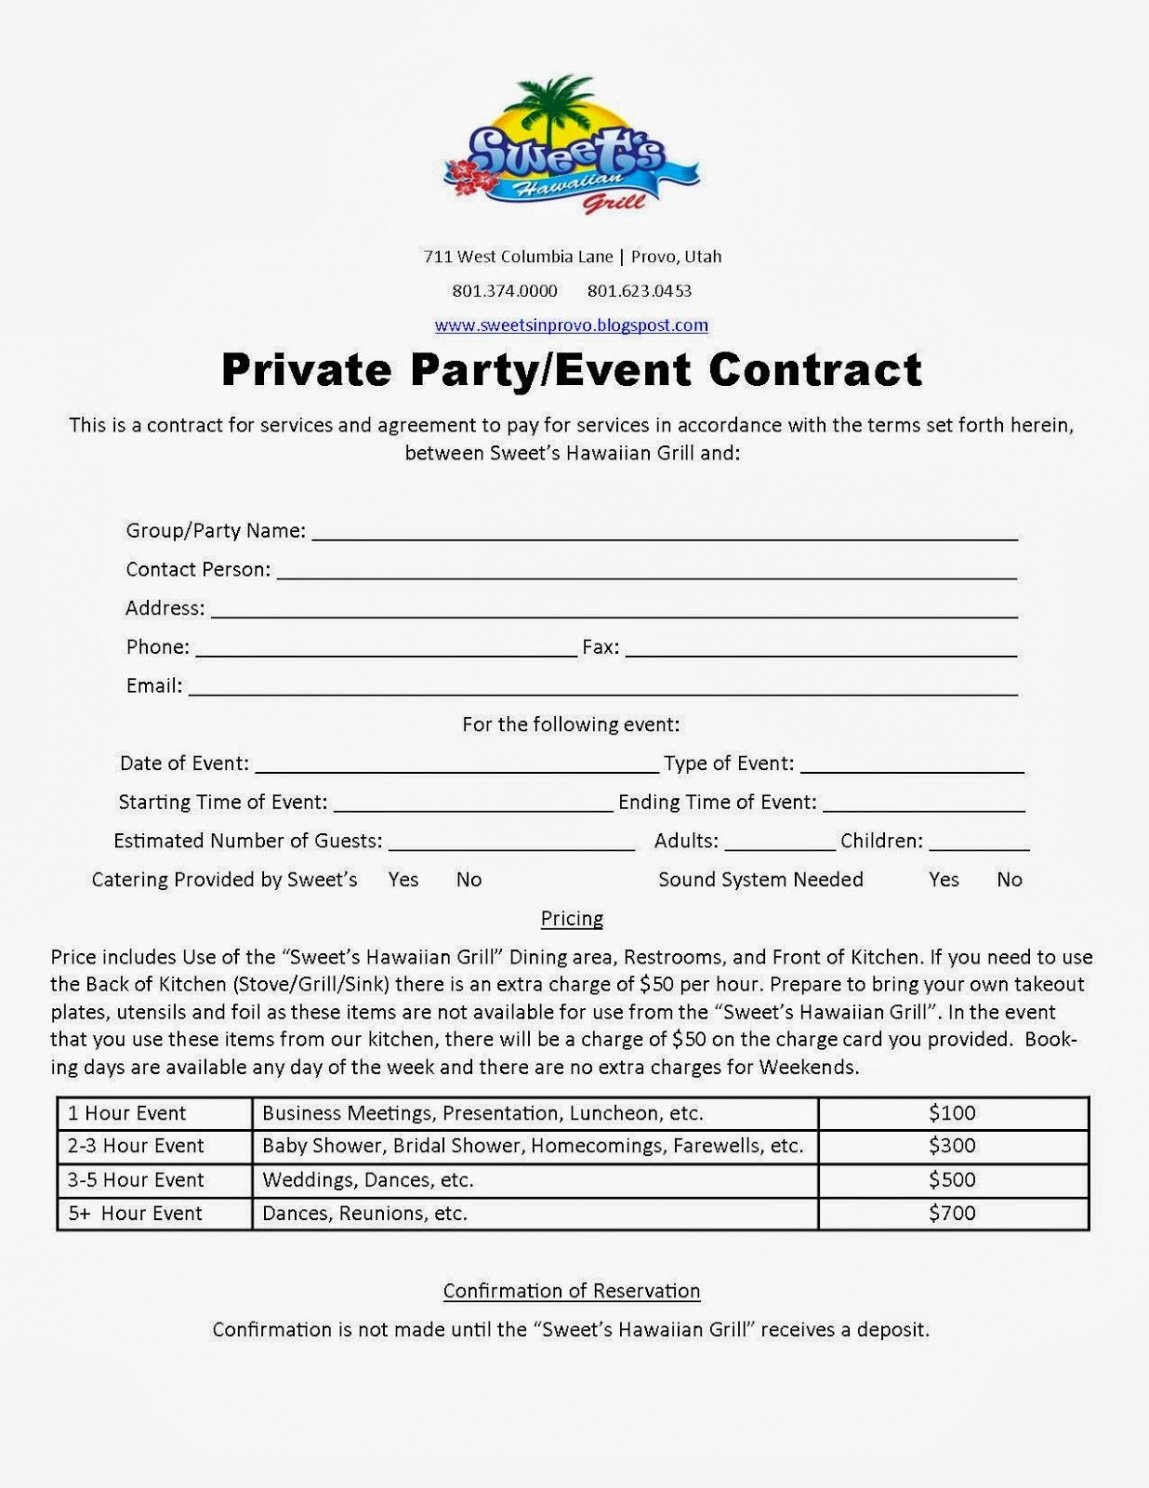 Costum Contract For Event Planning Services Template Pdf Example